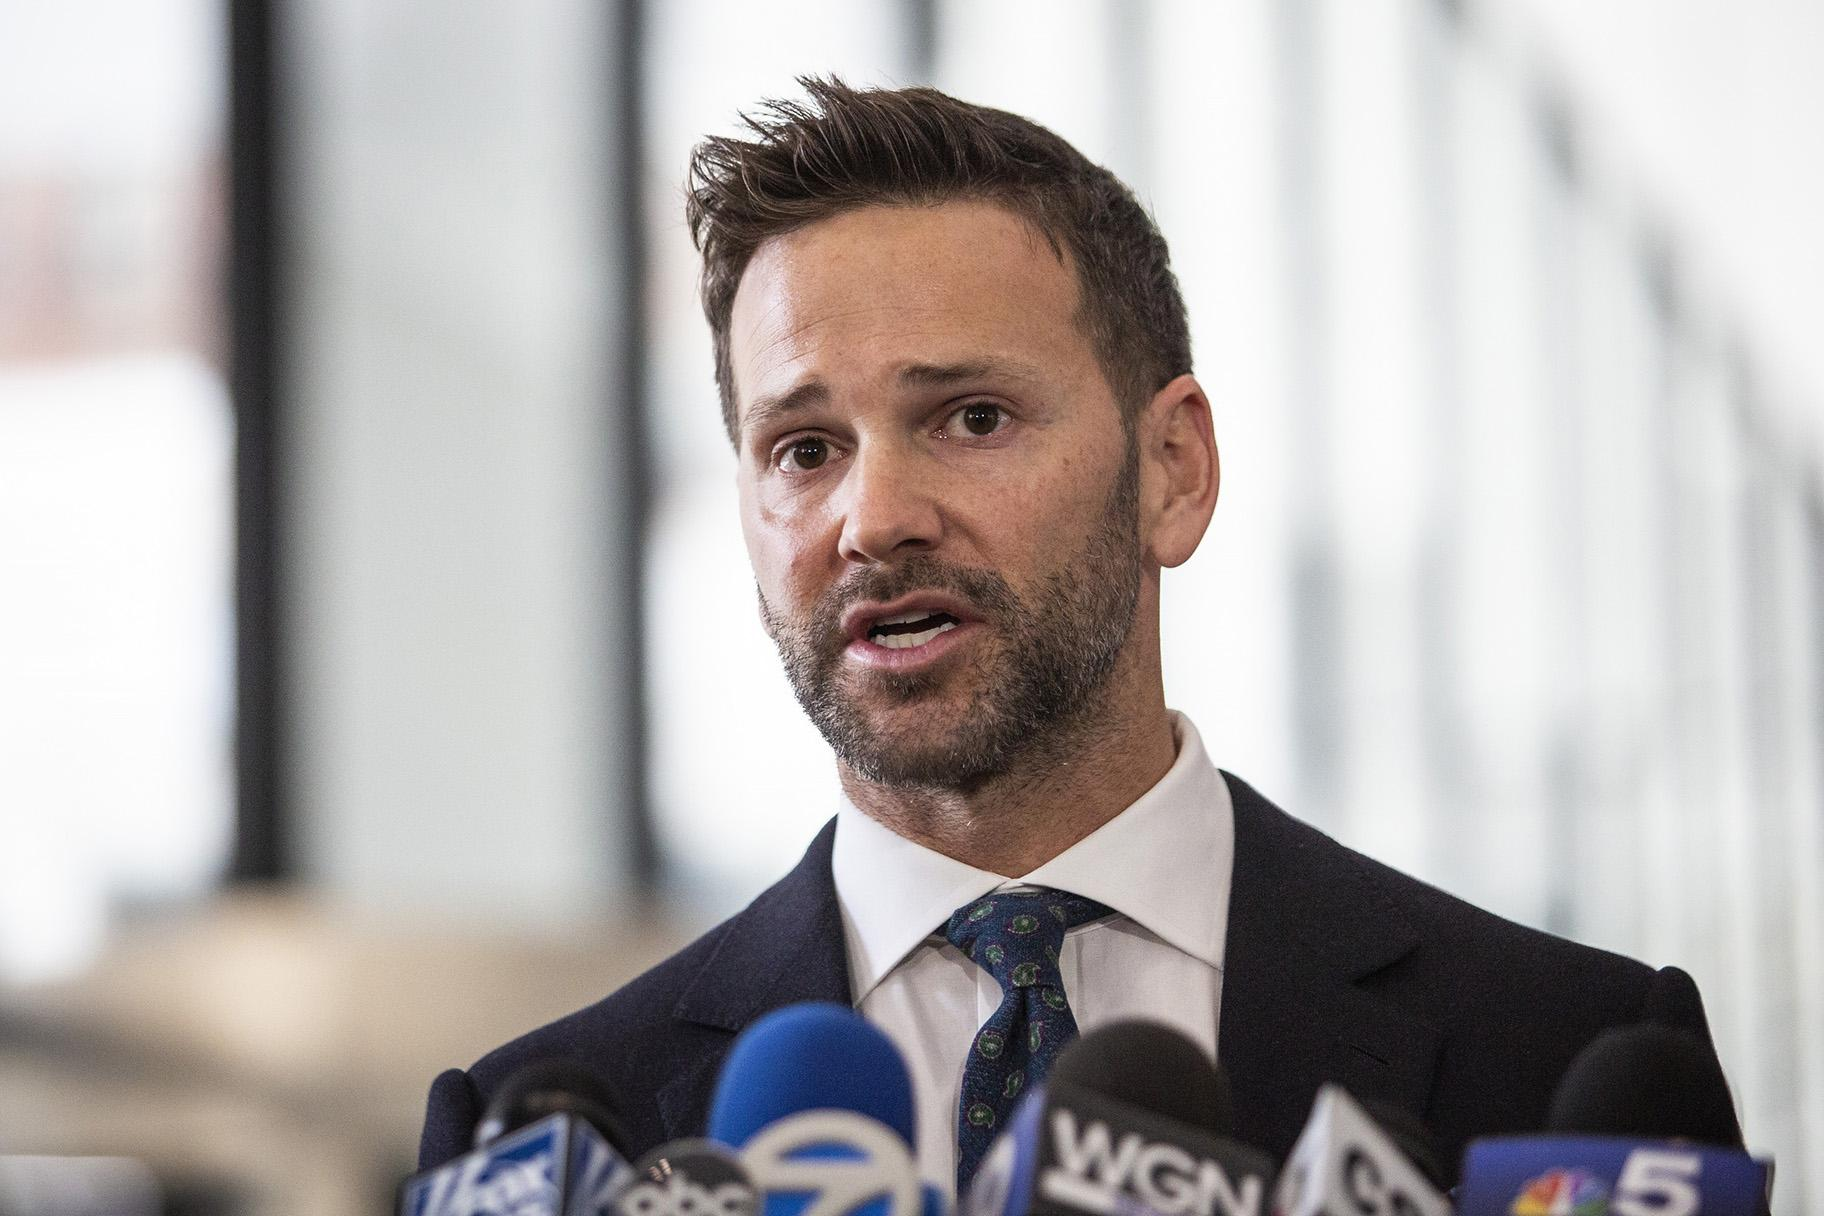 Former U.S. Rep. Aaron Schock speaks to reporters at the Dirksen Federal Courthouse on Wednesday, March 6, 2019. (Ashlee Rezin / Chicago Sun-Times via AP)